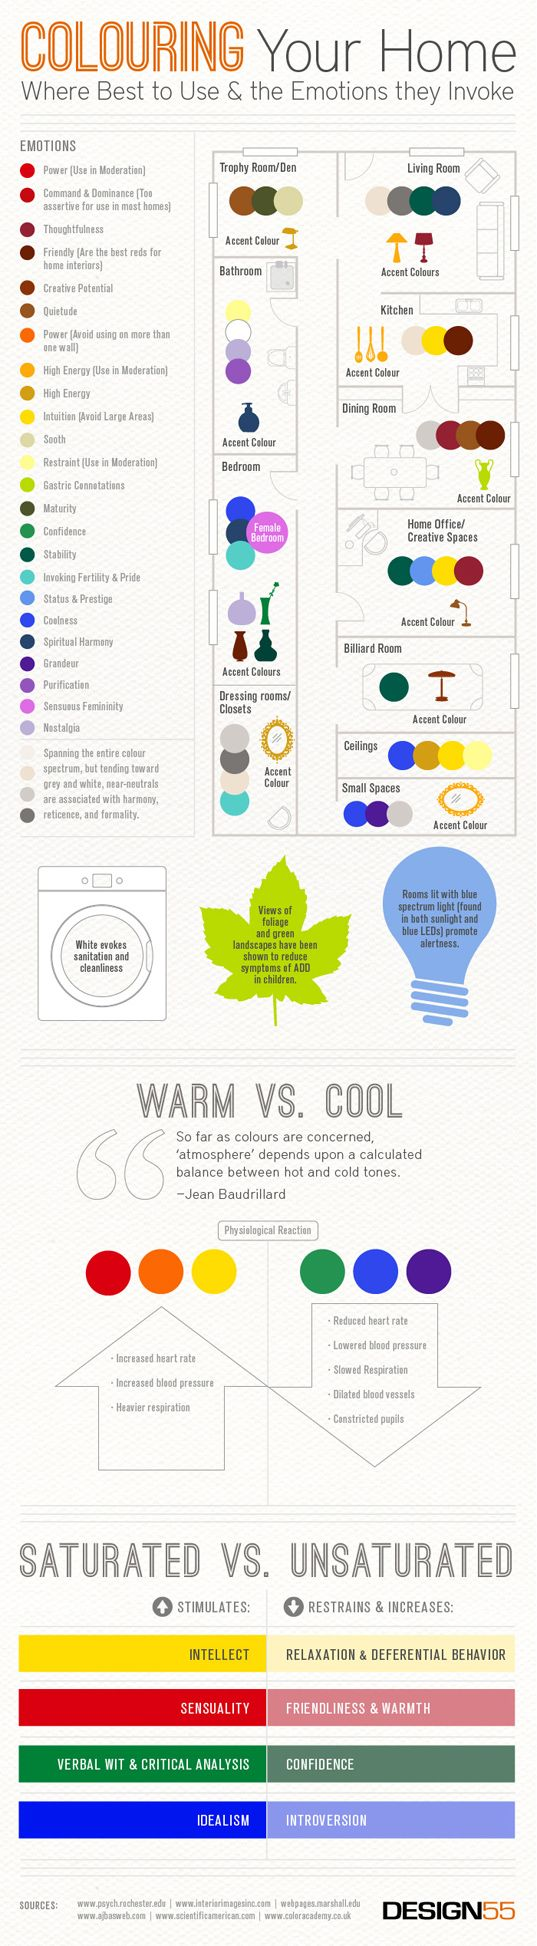 coloring your home, infographic, green design, sustainable design, green interiors, interior decor, interior design, interior decorating, co...: